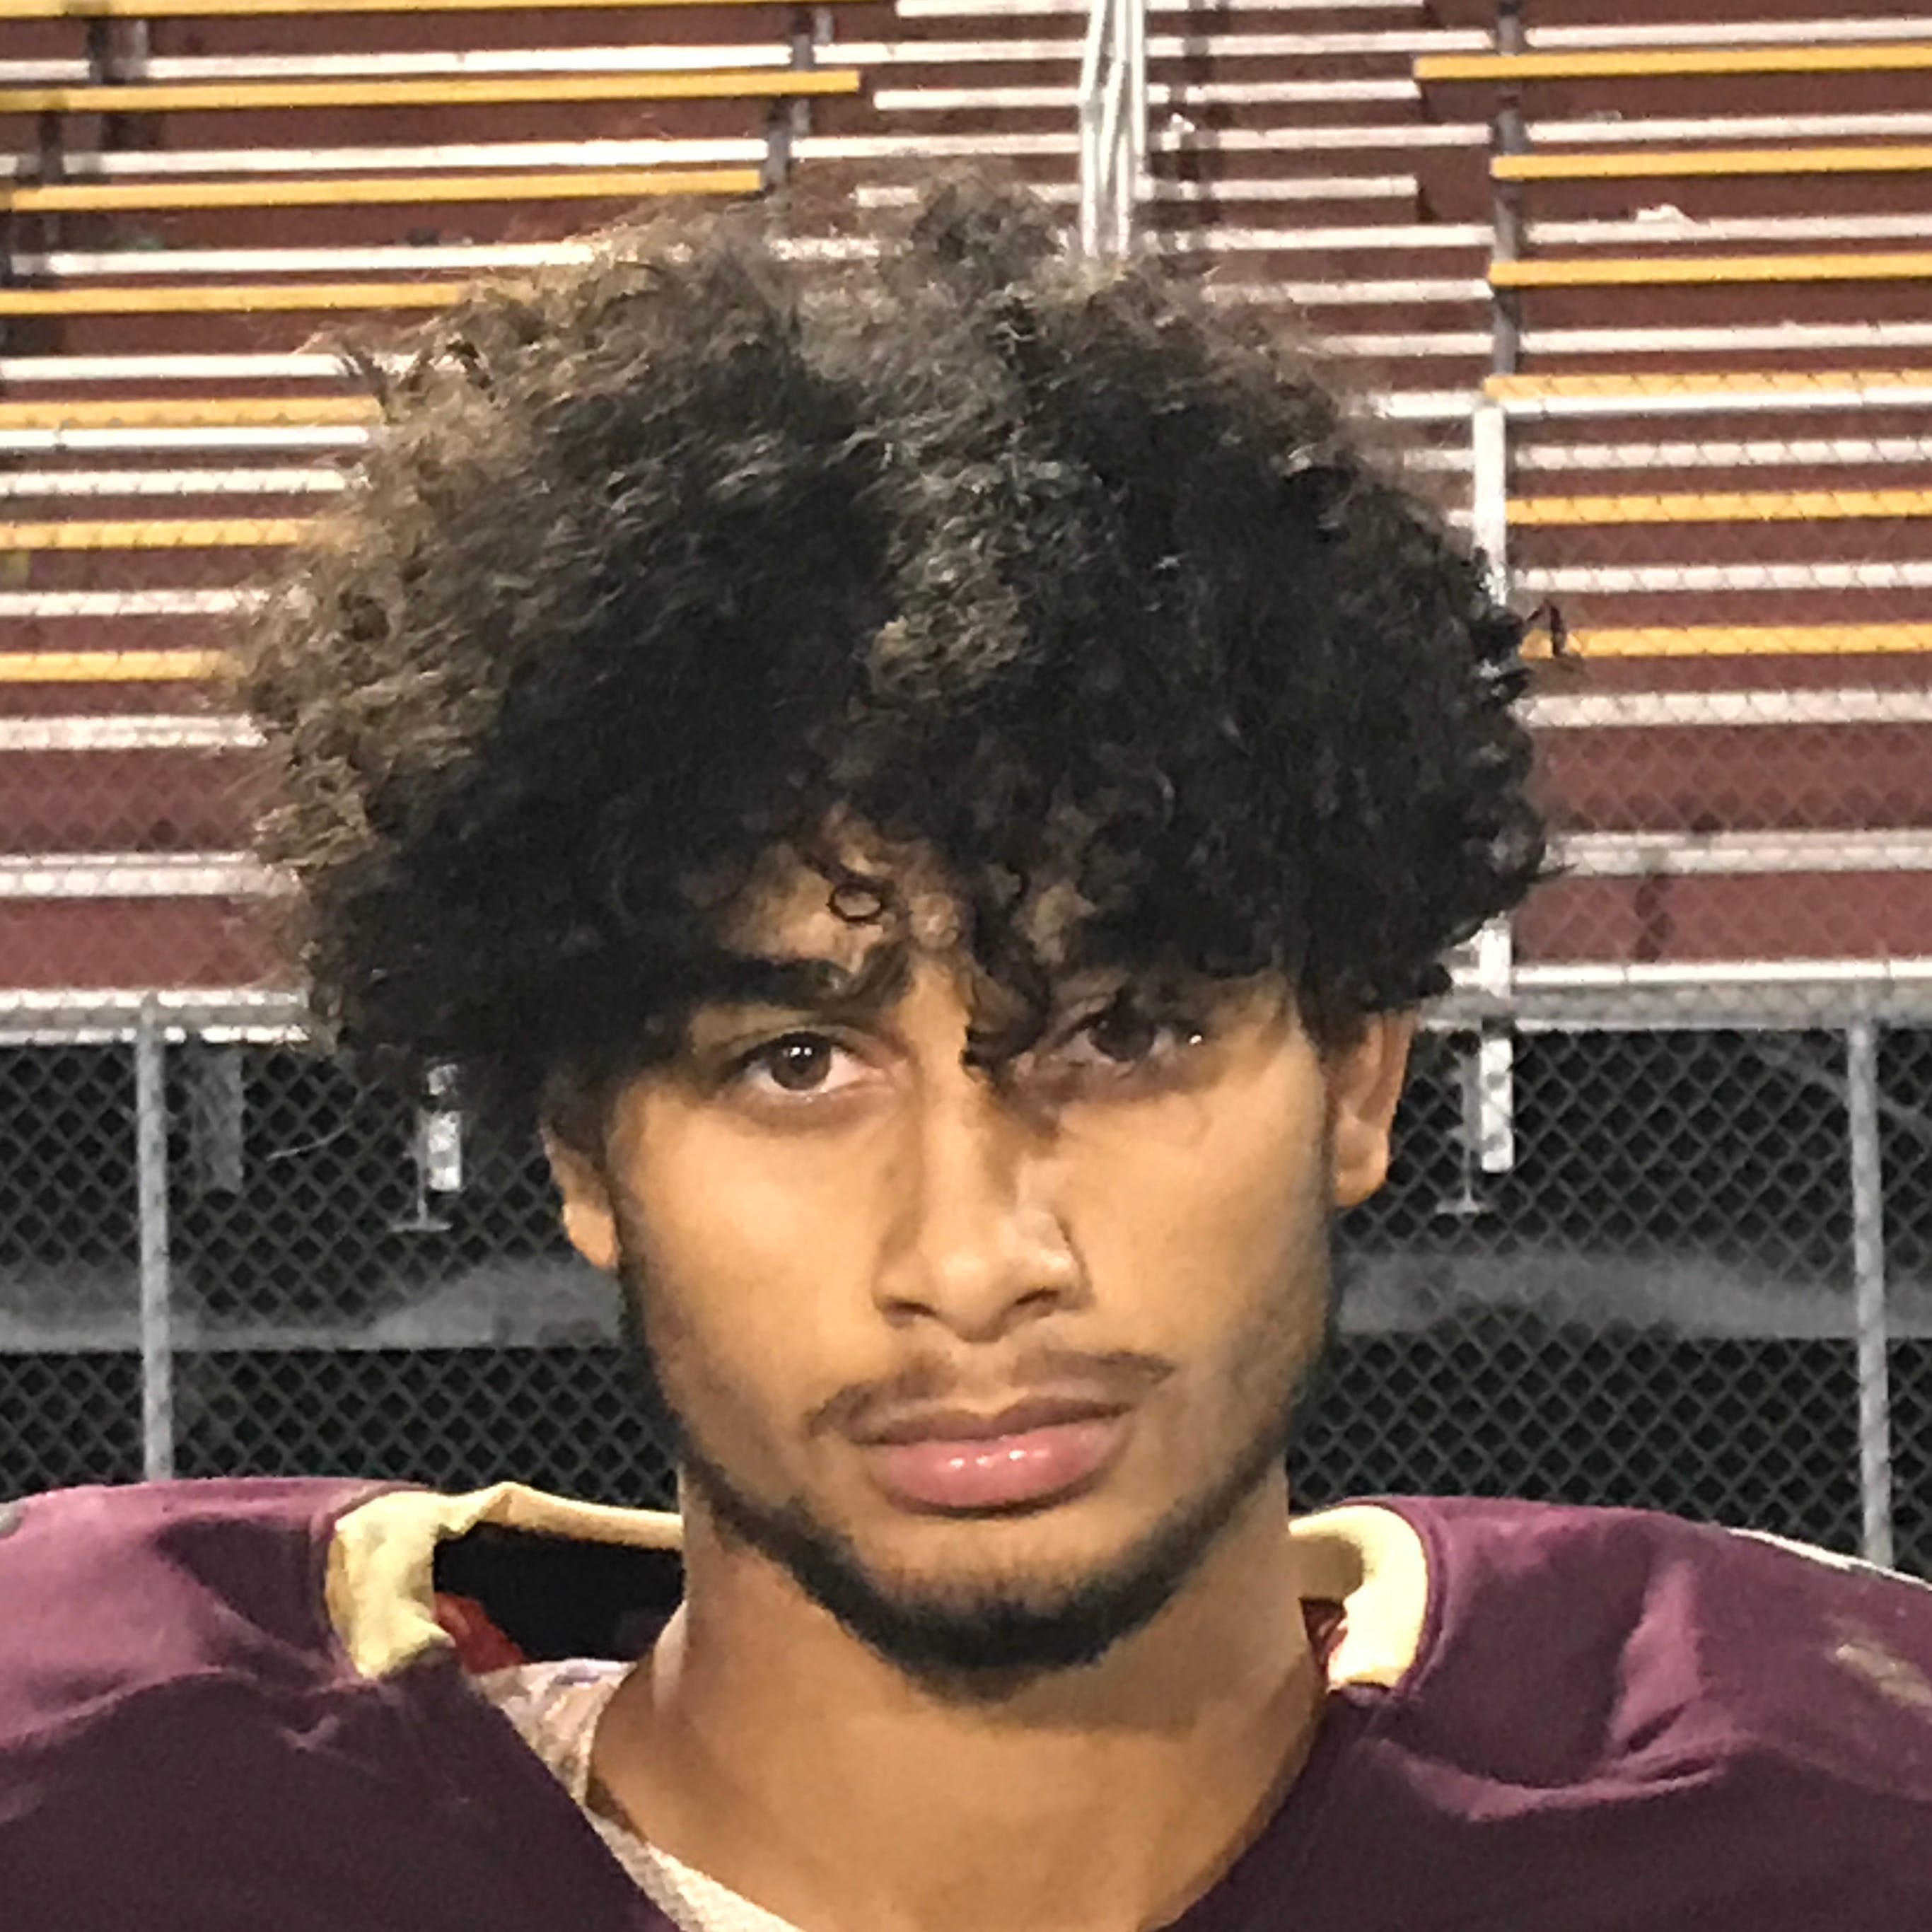 Zion Sharp scored two touchdowns Friday in Licking Heights' 28-21 victory against Newark Catholic.